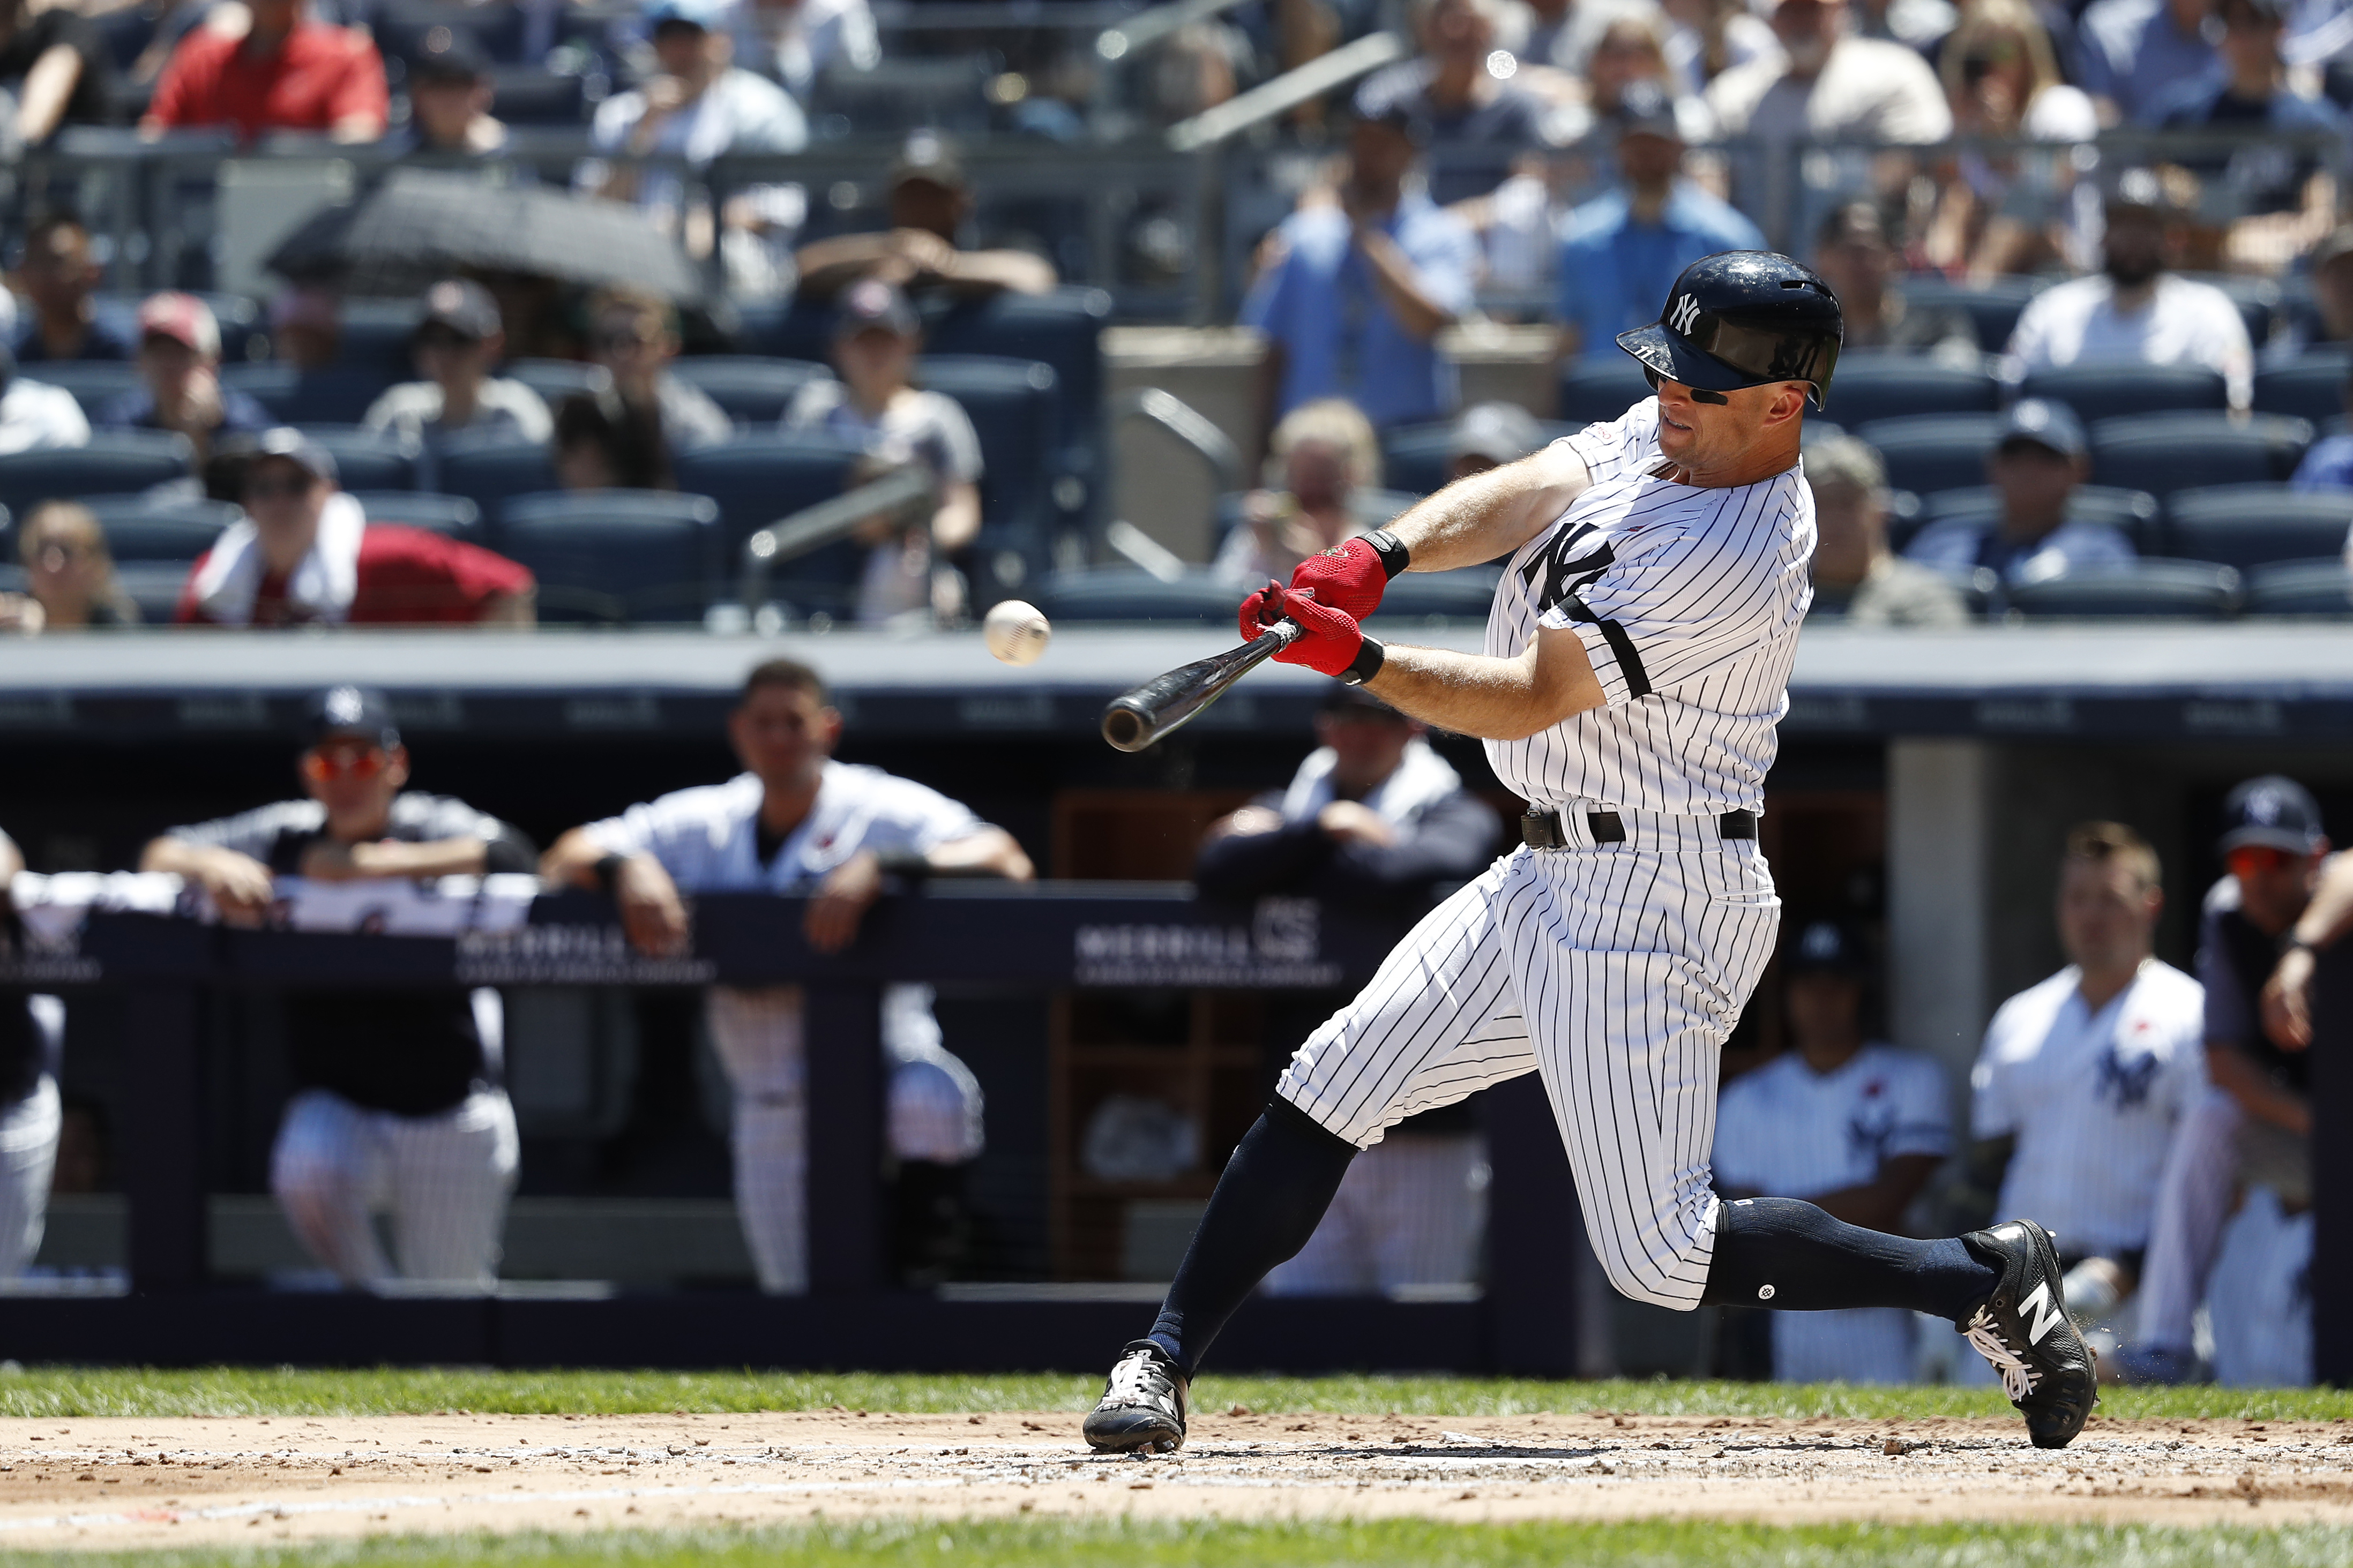 Decimated by injuries, Yankees have managed to thrive